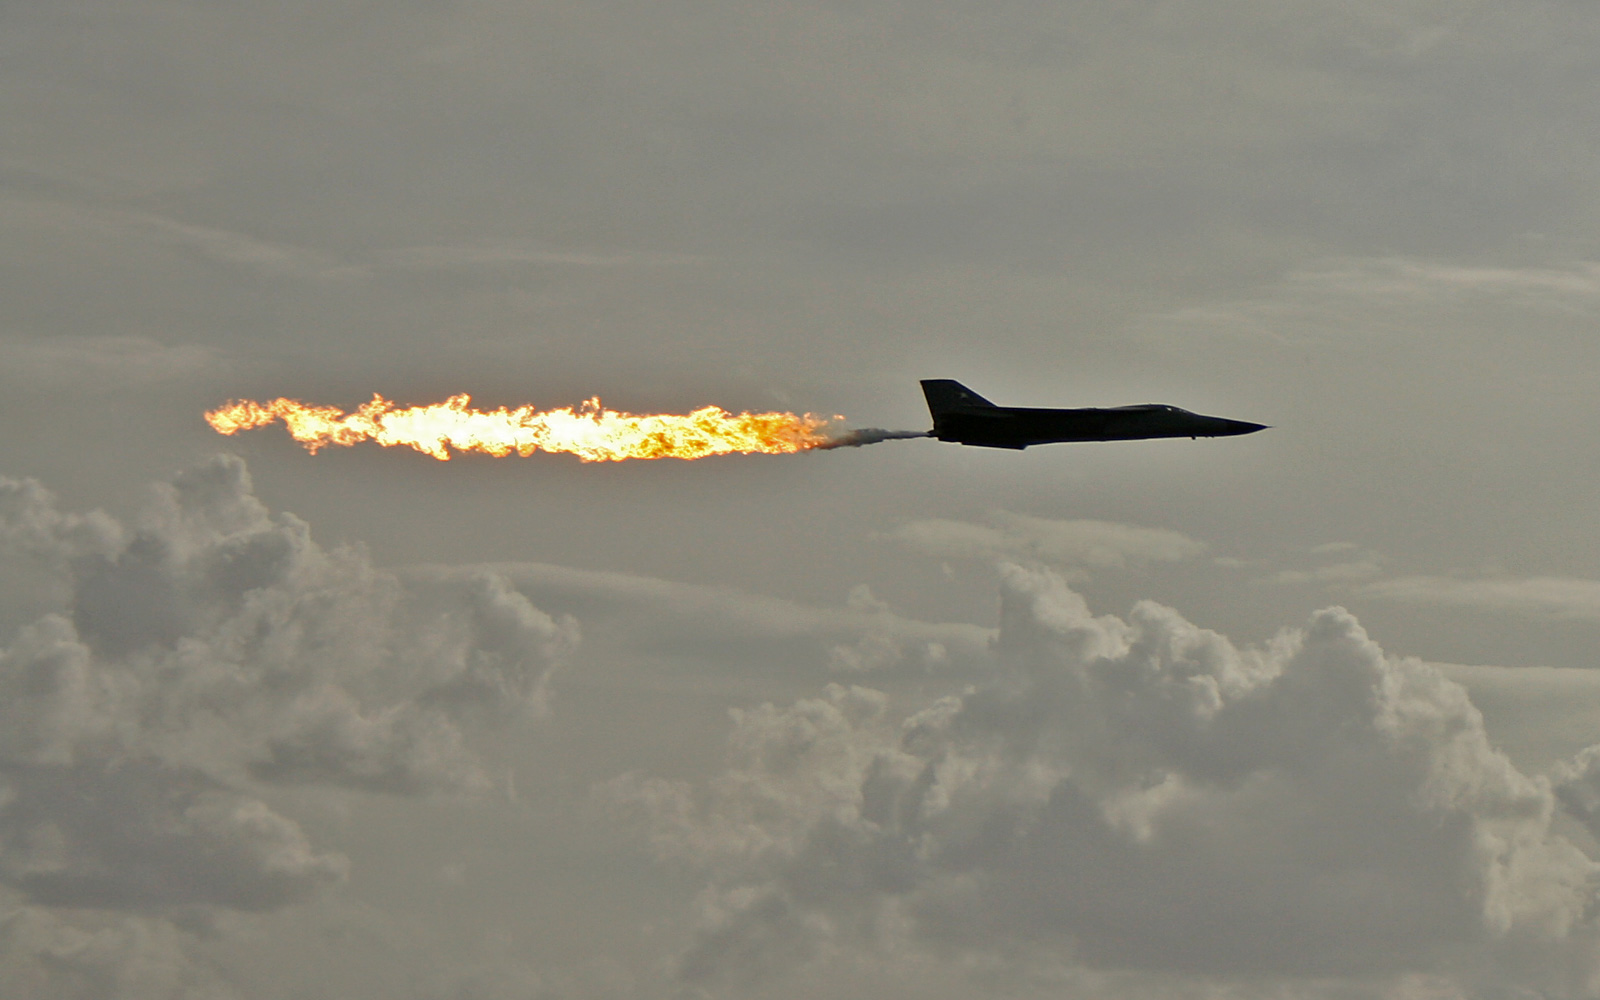 File:F-111-Fuel-Dump,-Avalon,-VIC-23.03.2007.jpg - Wikipedia